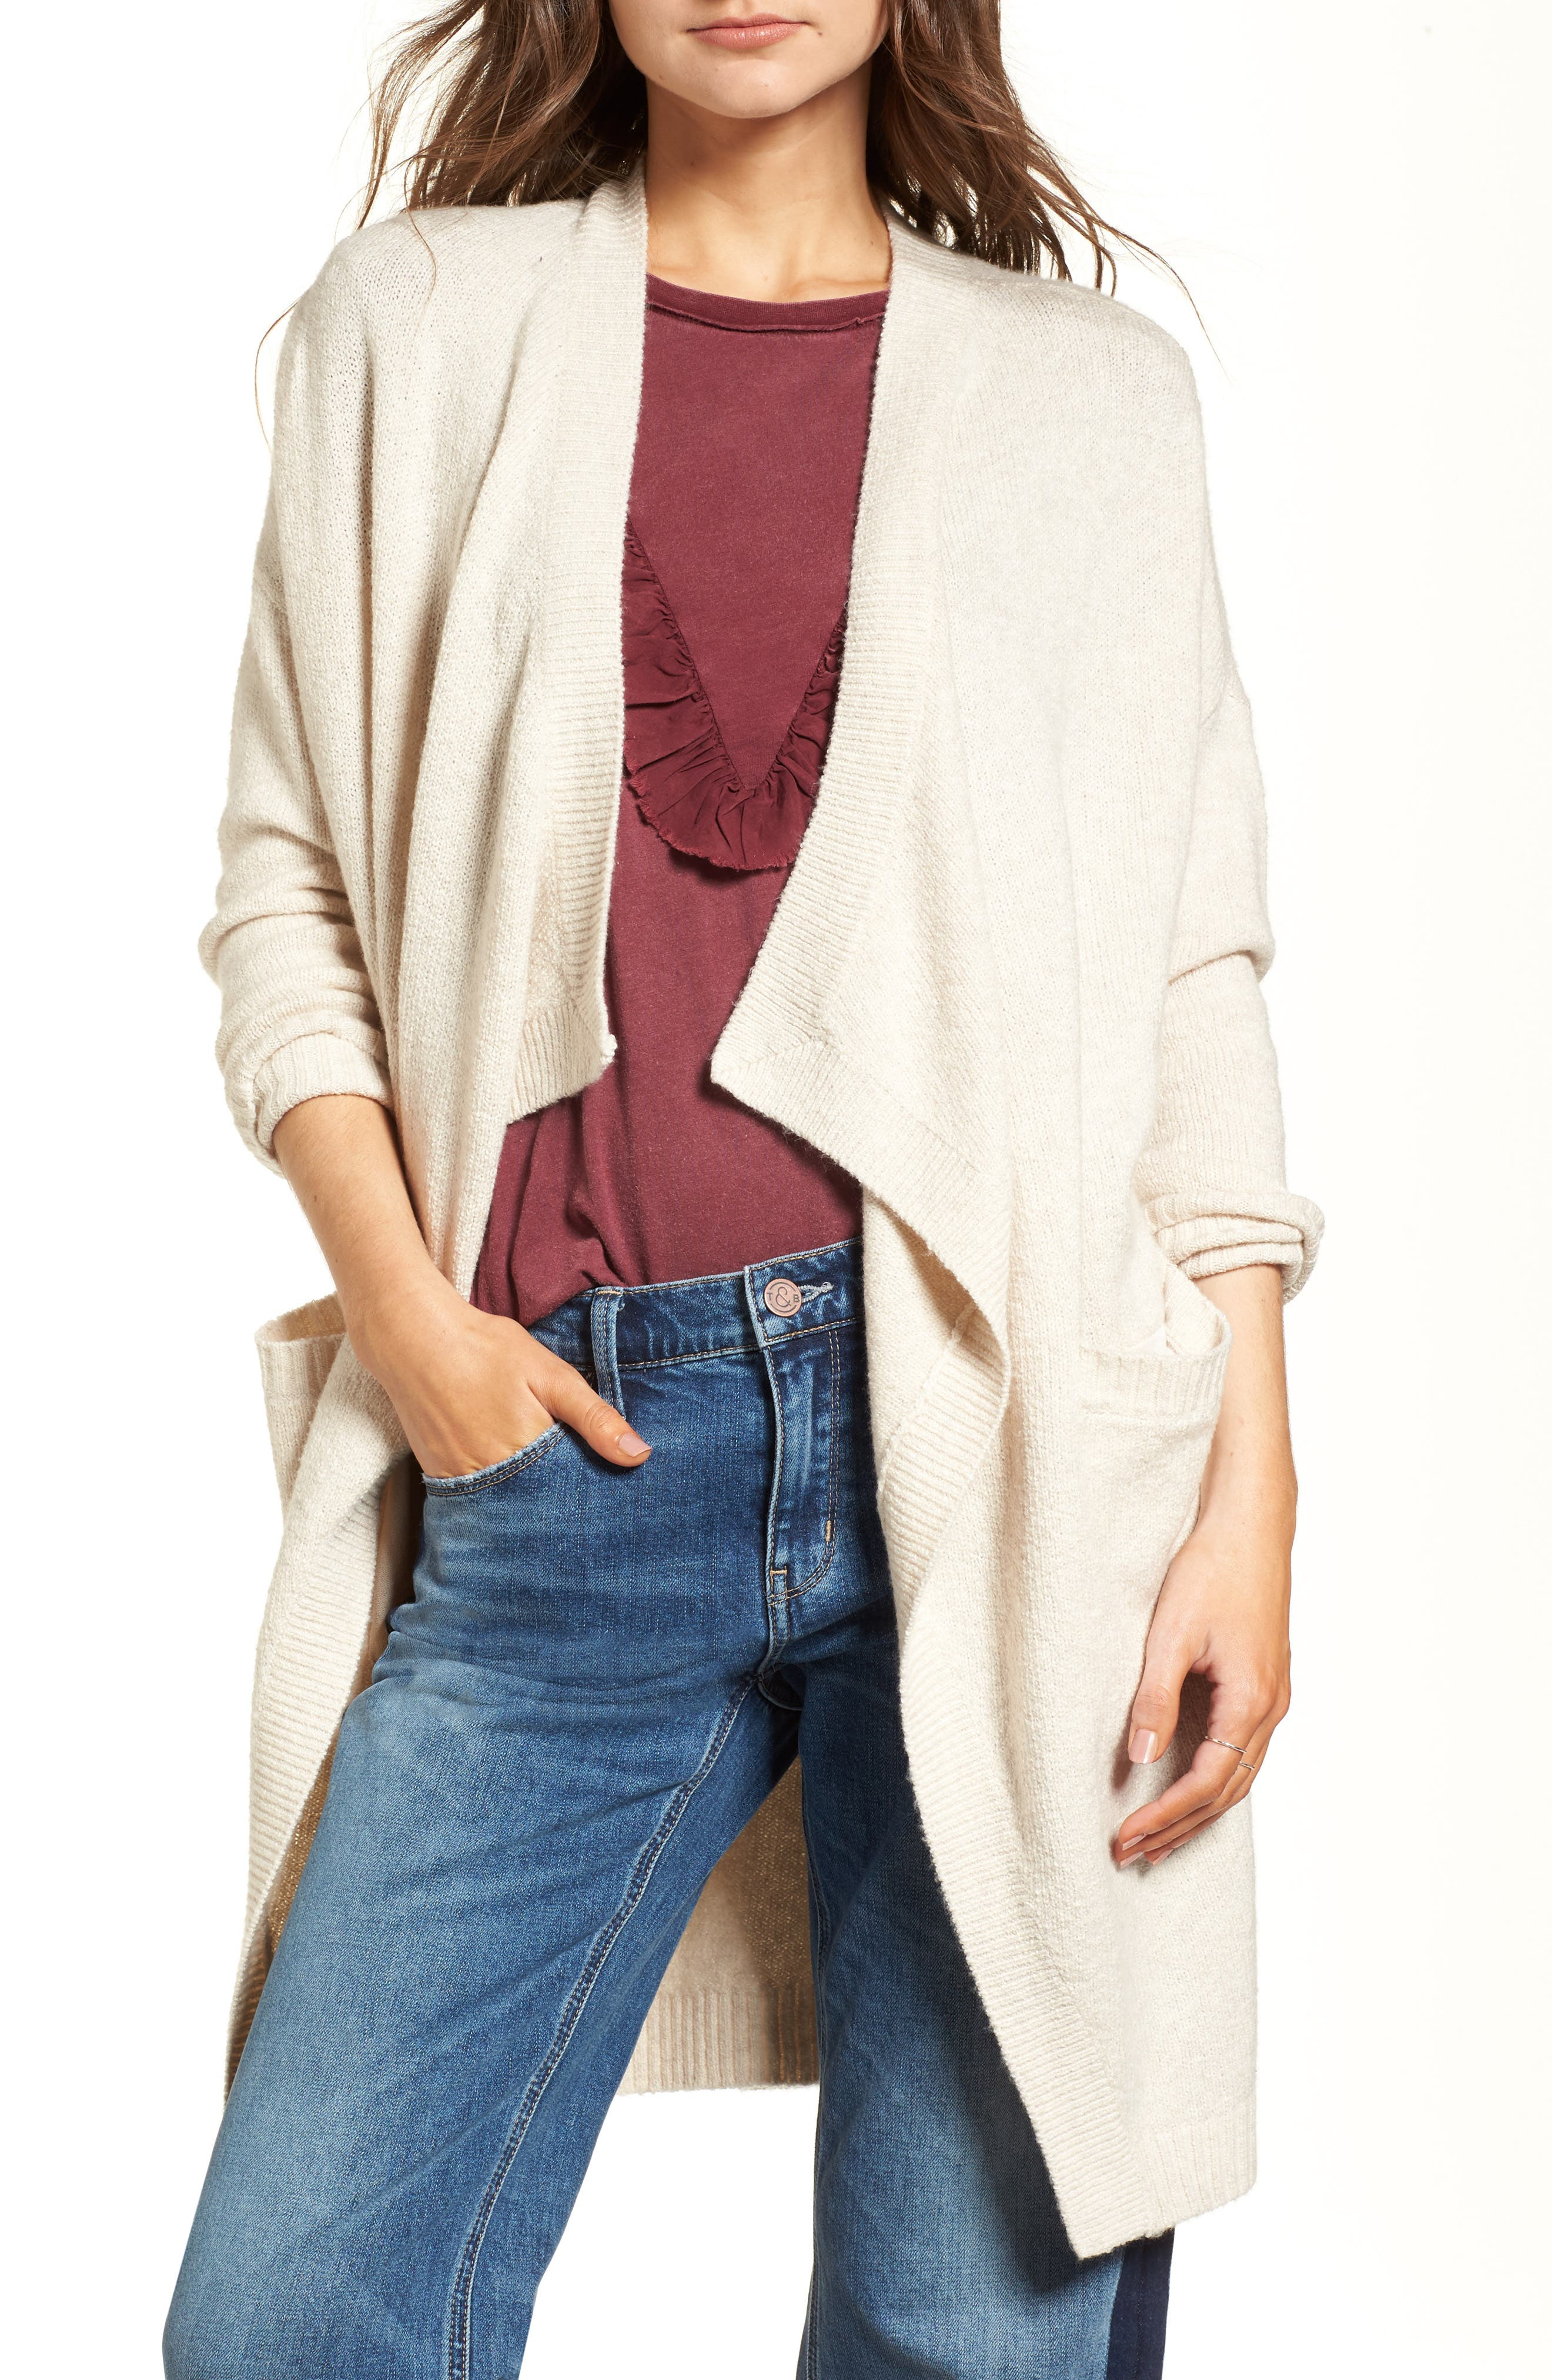 Alternate Image 1 Selected - Treasure & Bond Drape Cardigan